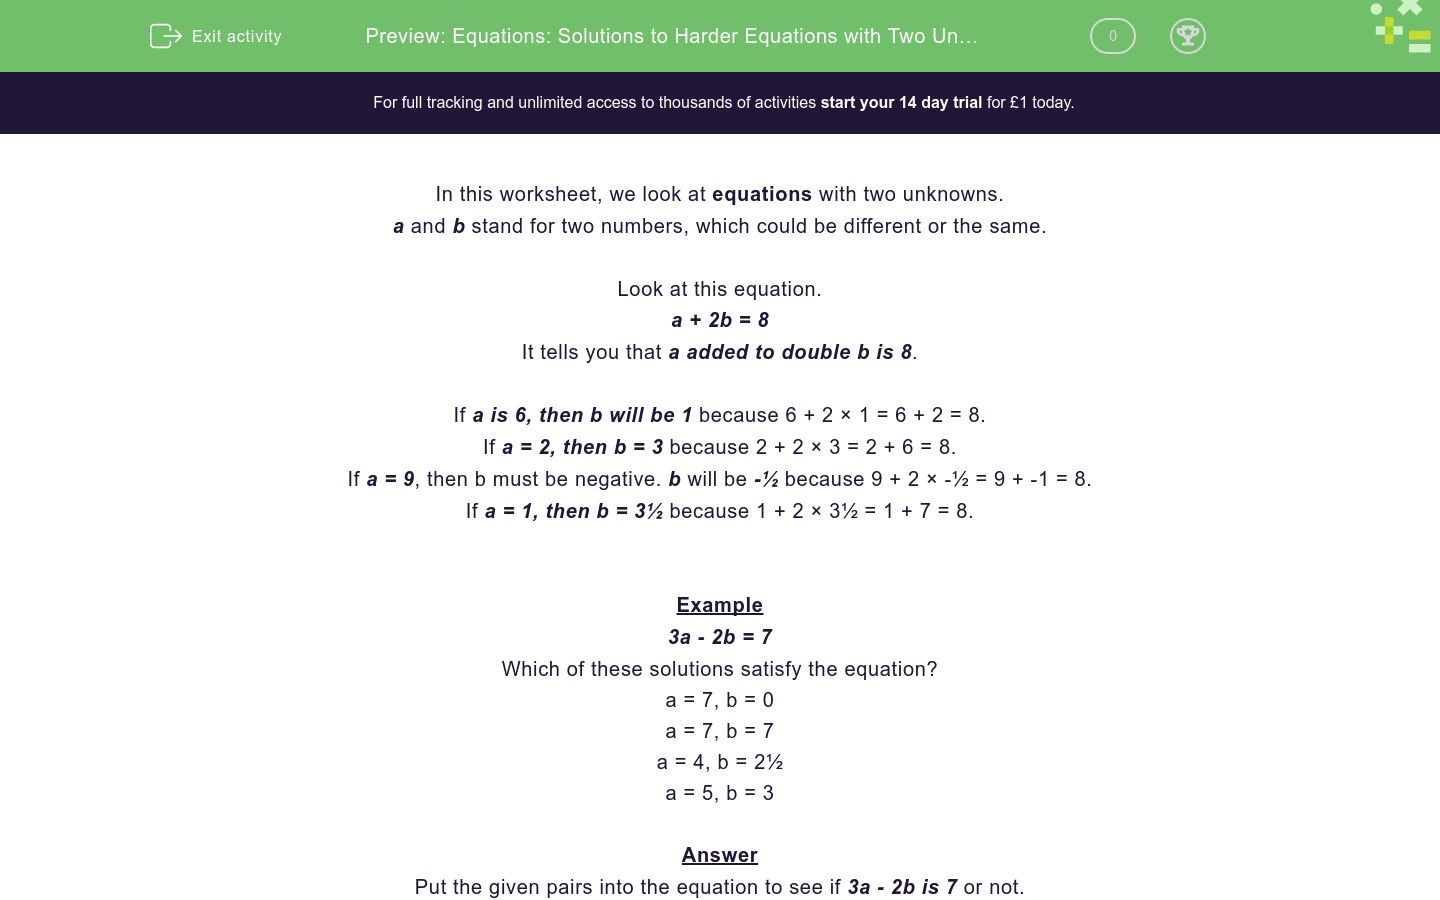 'Equations: Solutions to Harder Equations with Two Unknowns' worksheet